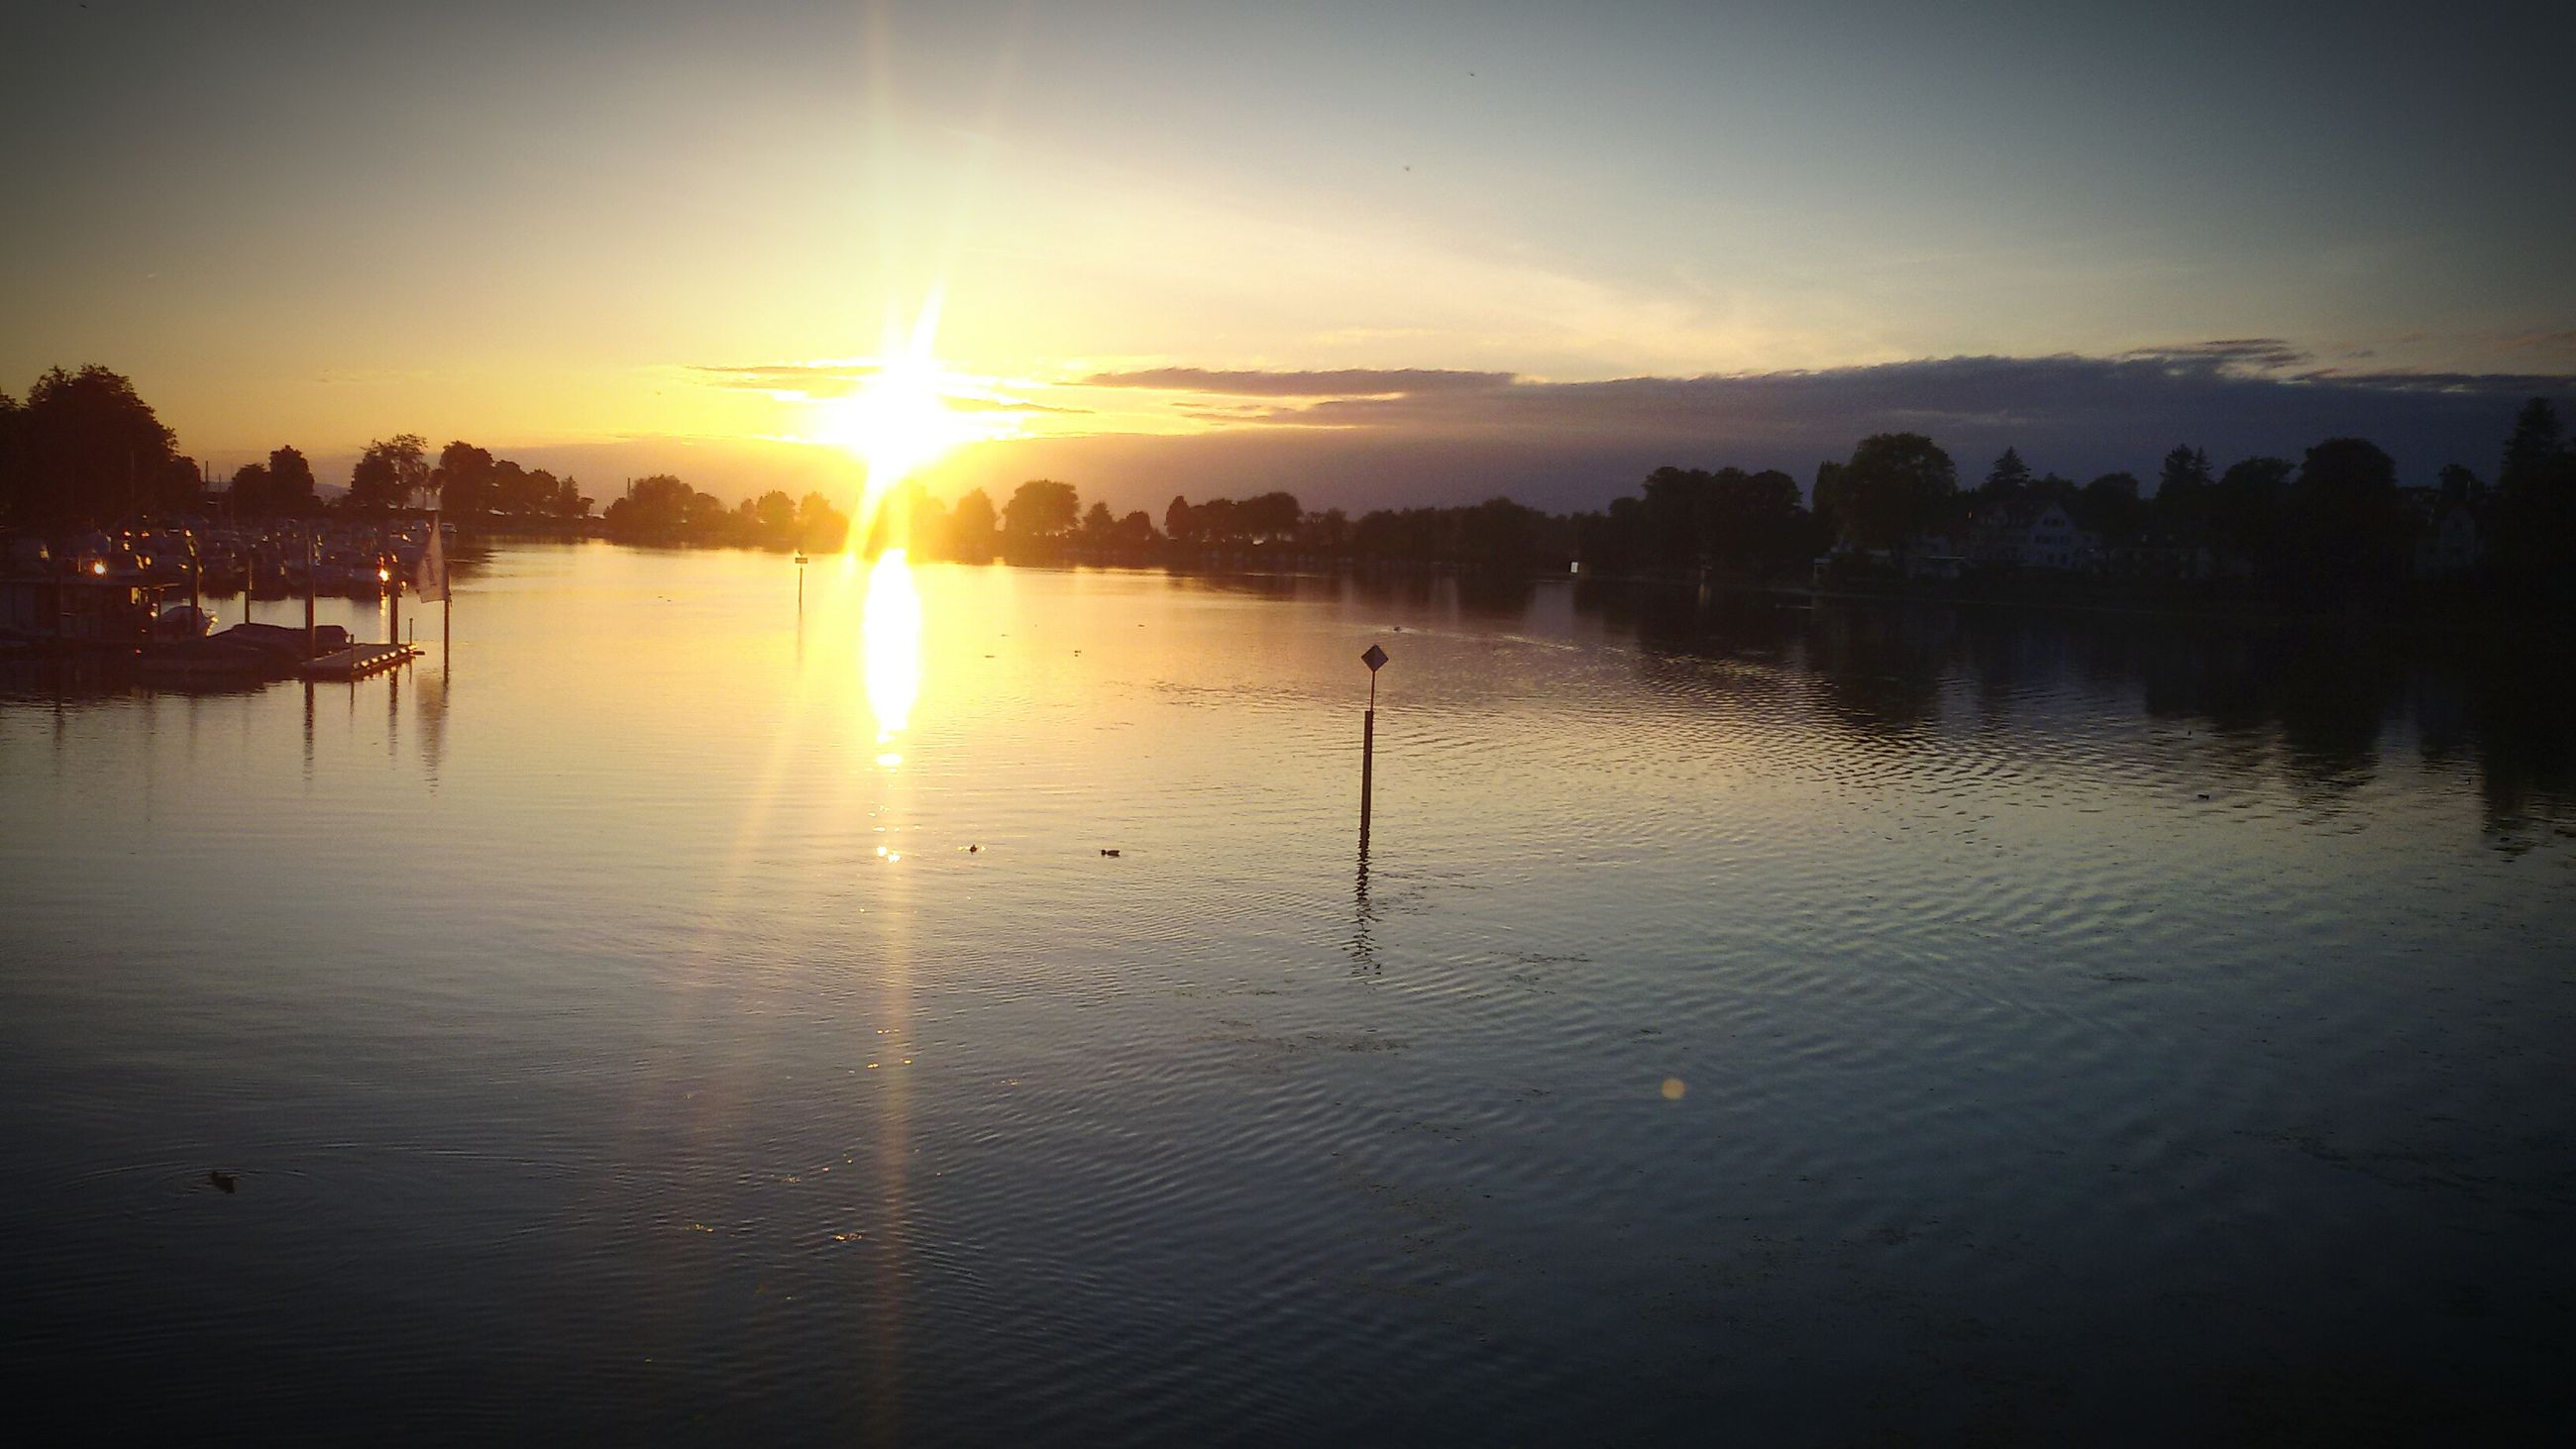 sunset, sun, water, reflection, tranquil scene, scenics, tranquility, lake, sunlight, beauty in nature, silhouette, sky, sunbeam, waterfront, orange color, nature, idyllic, lens flare, rippled, river